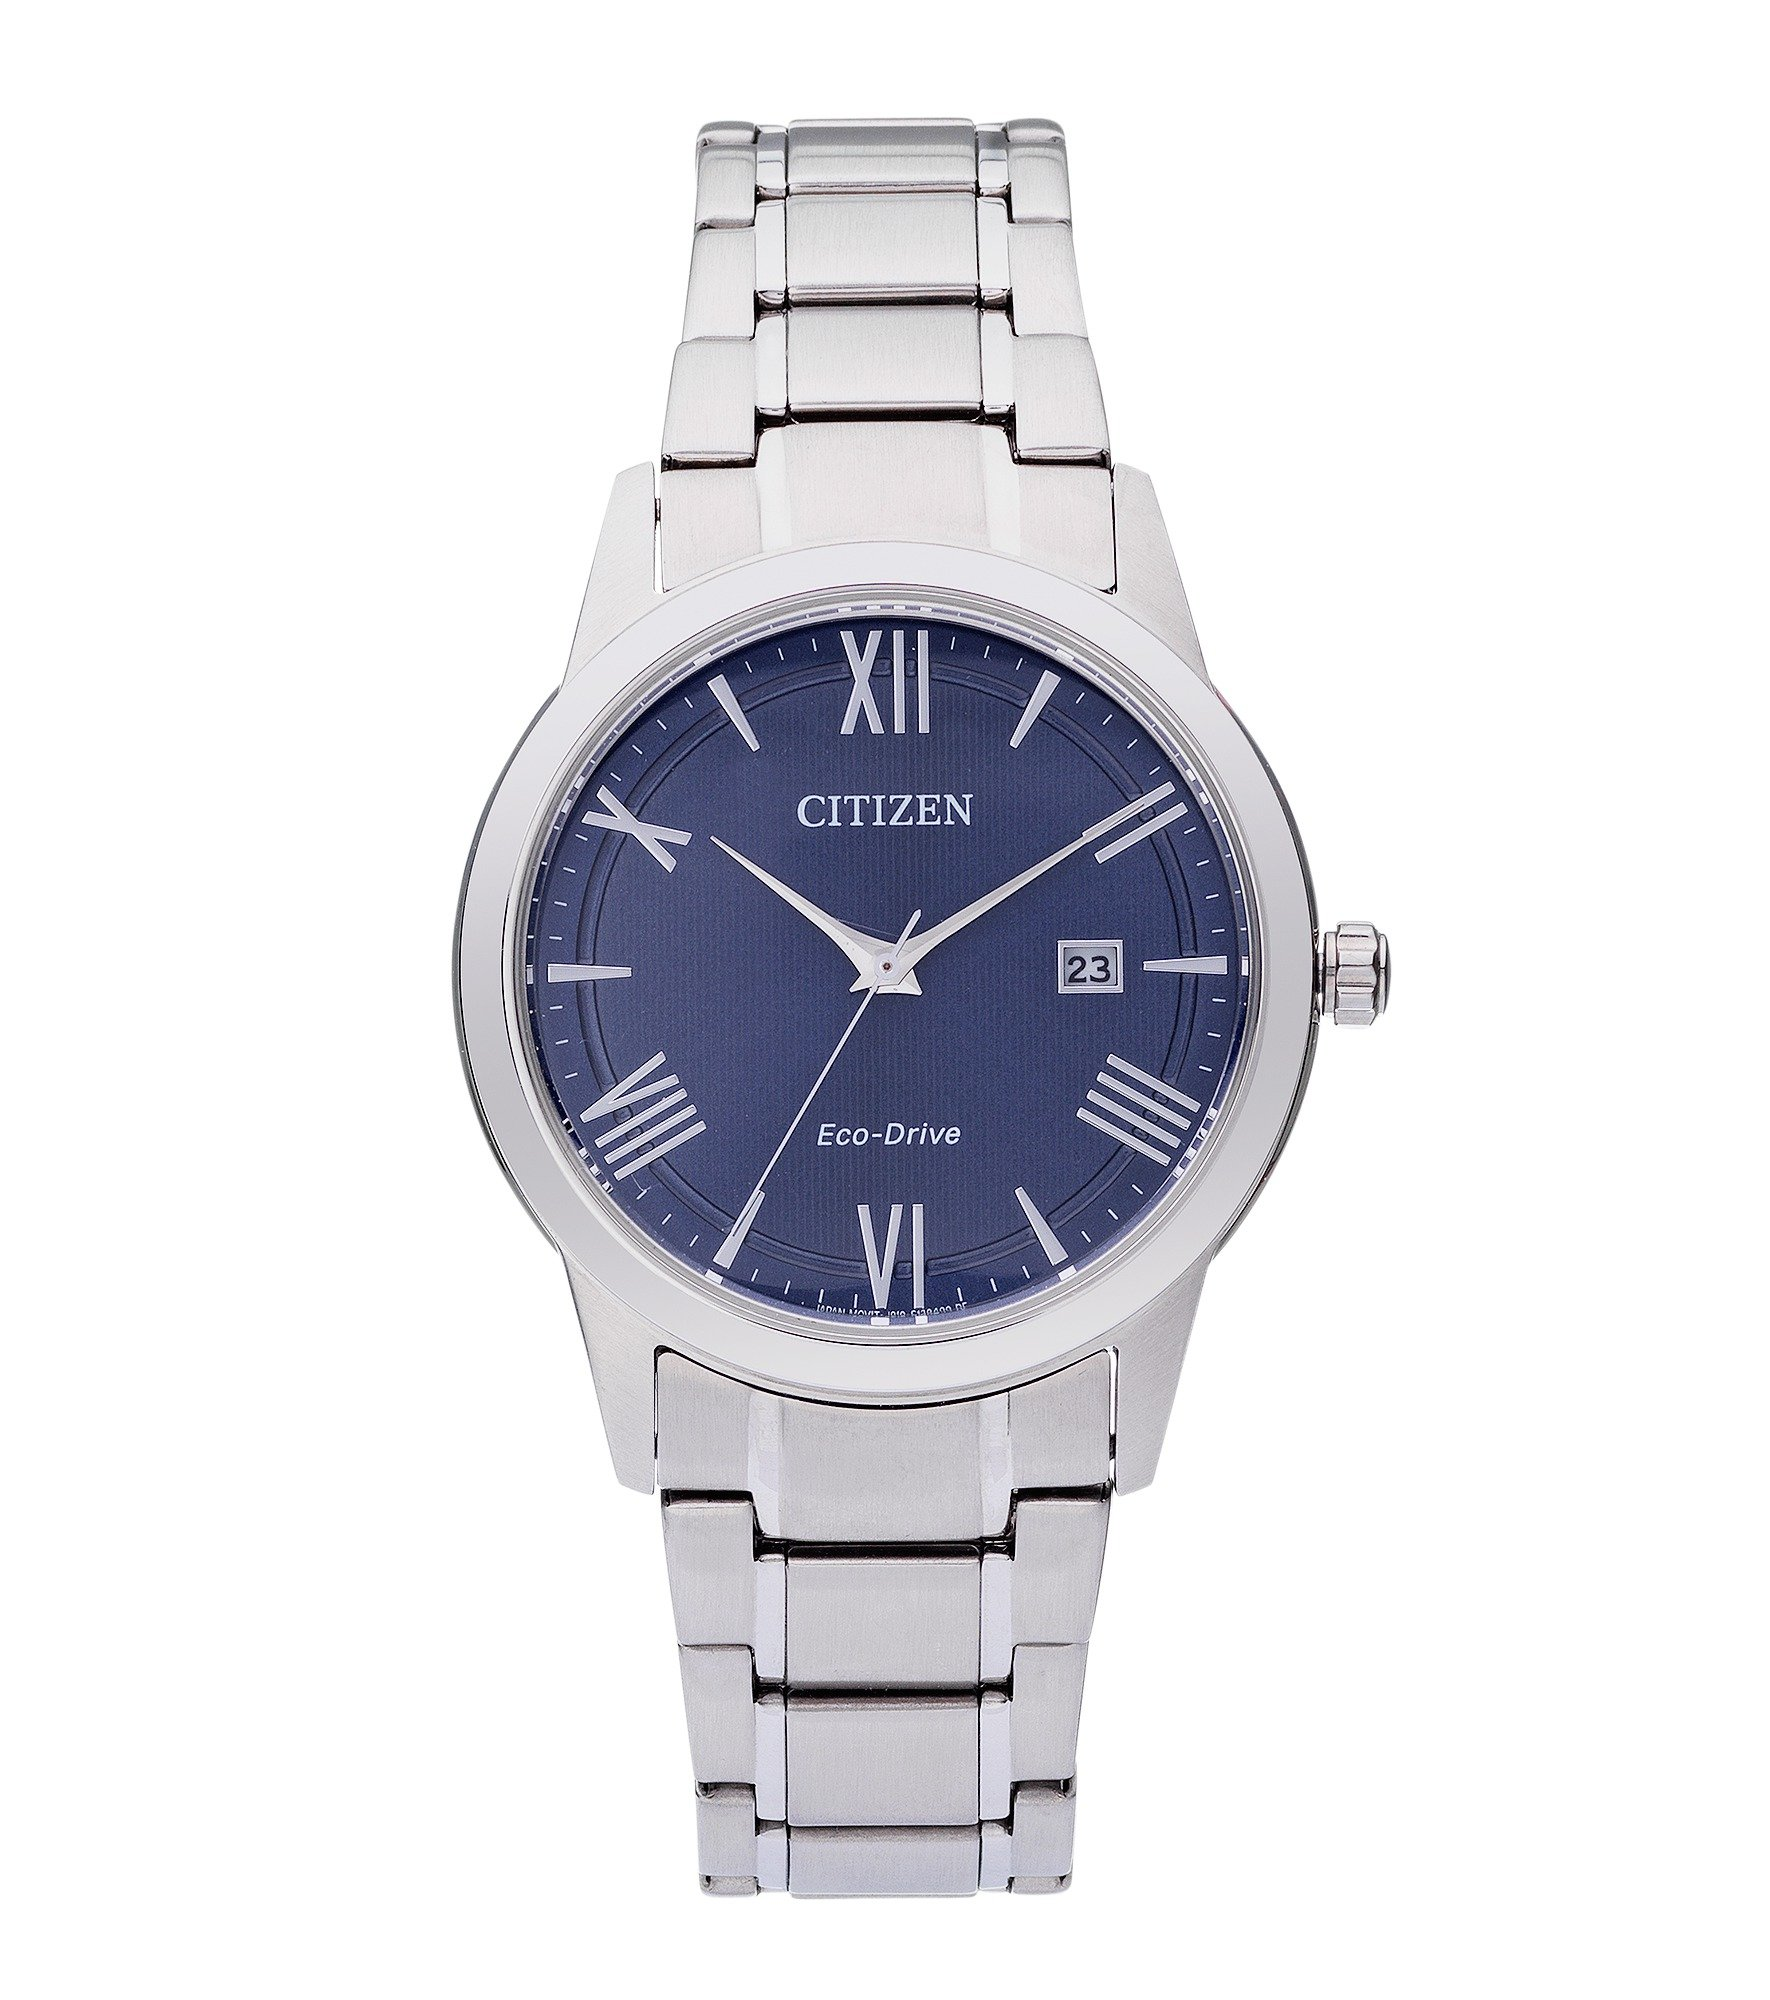 Citizen Men's Eco-Drive Blue Dial Watch